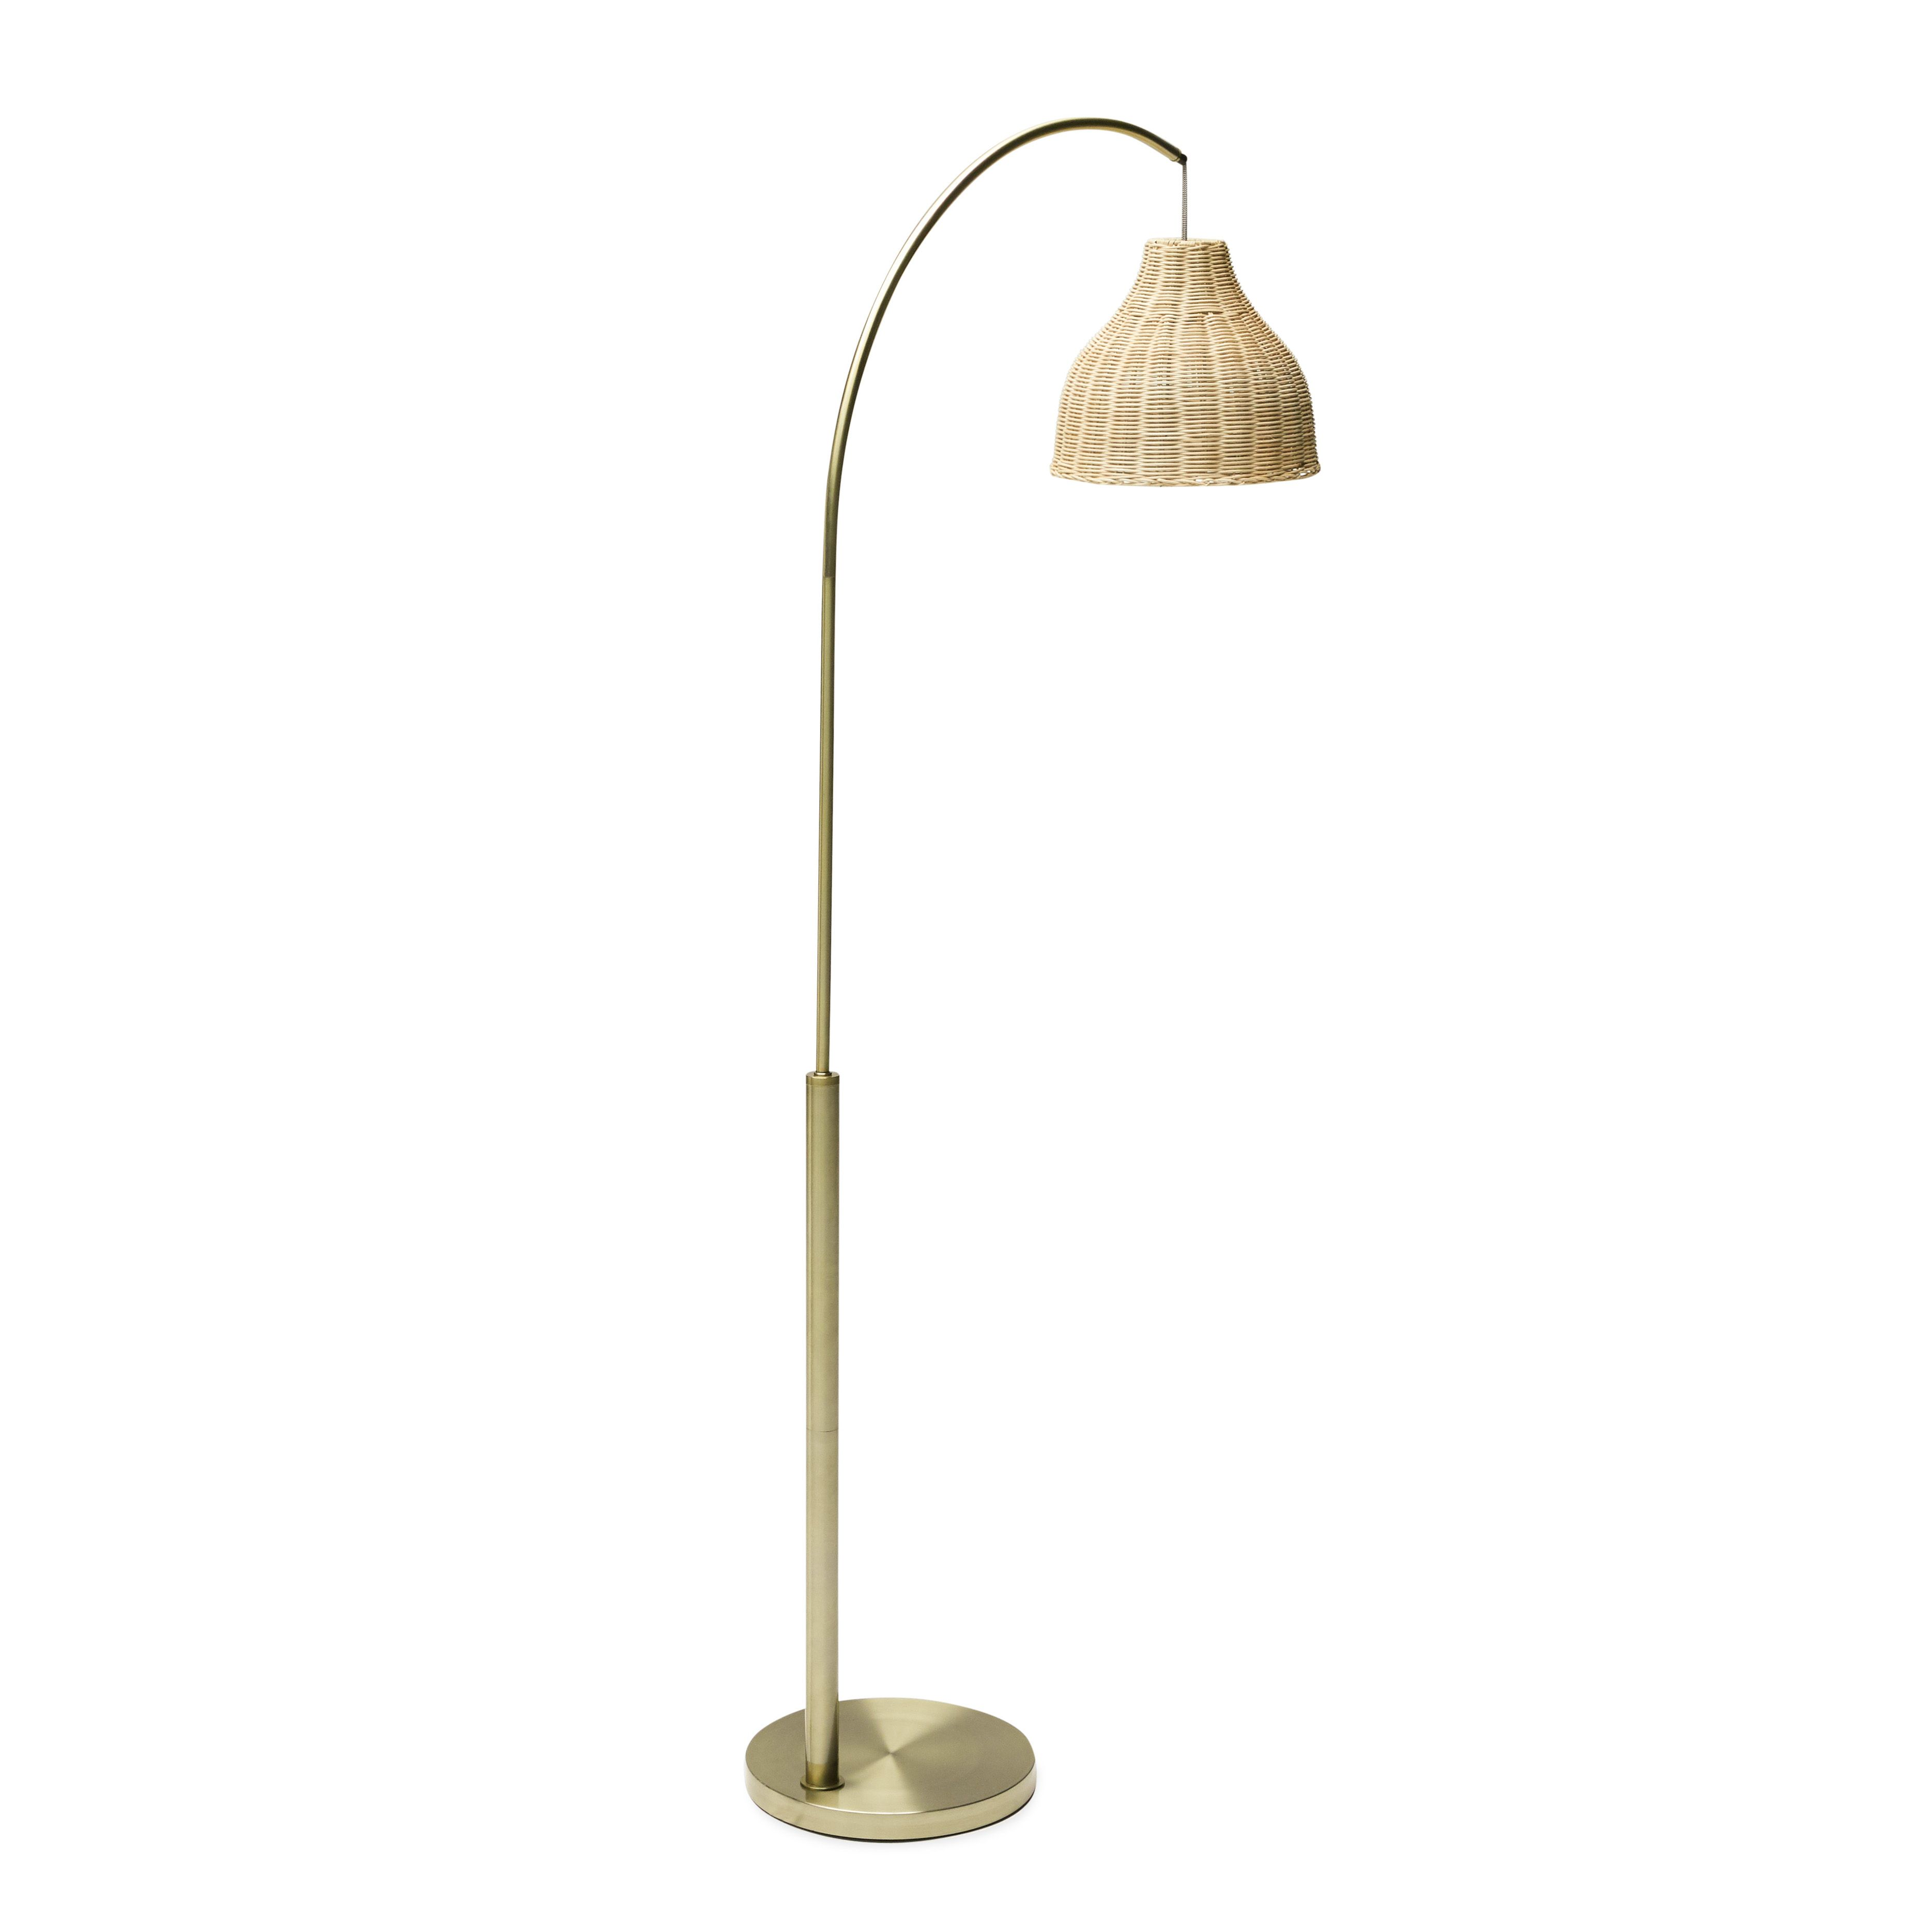 Home Arched floor lamp, Rattan shades, Floor lamp